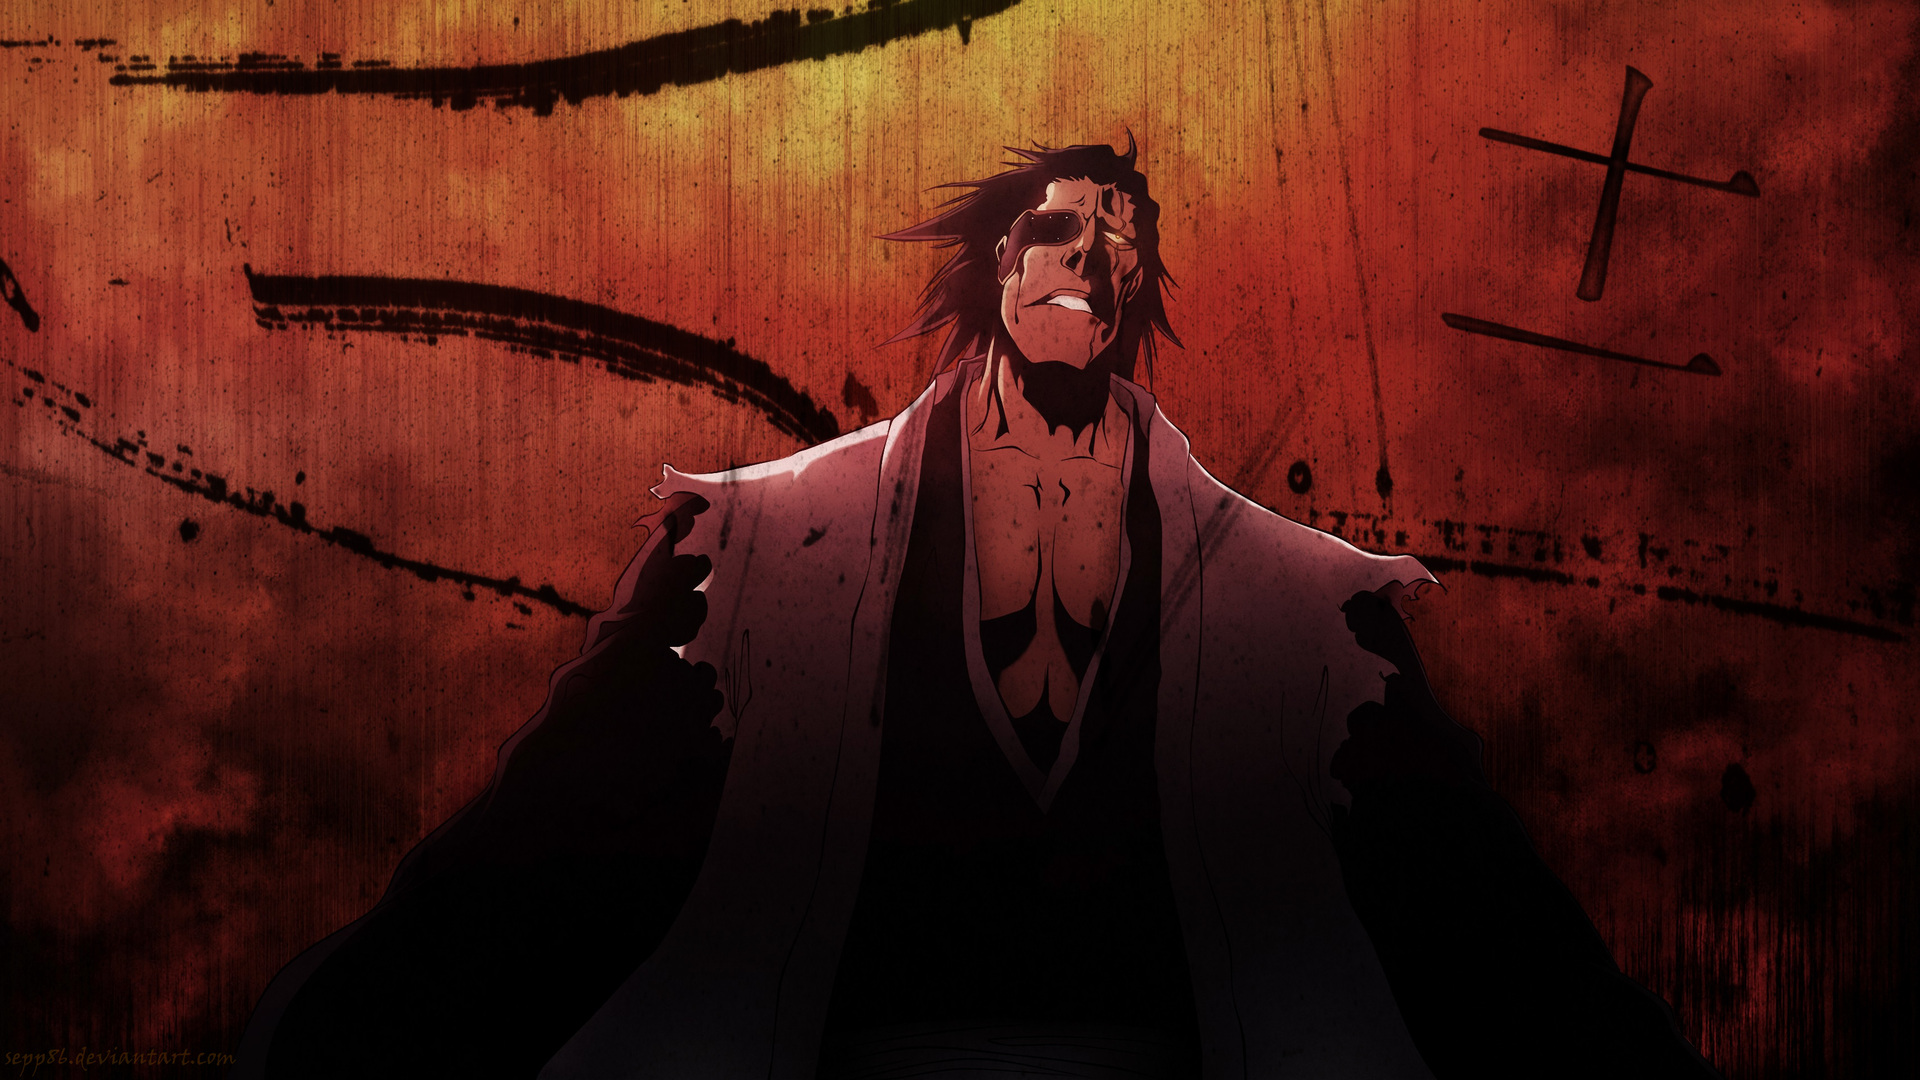 1920x1080 Anime Bleach Kenpachi Zaraki Laptop Full Hd 1080p Hd 4k